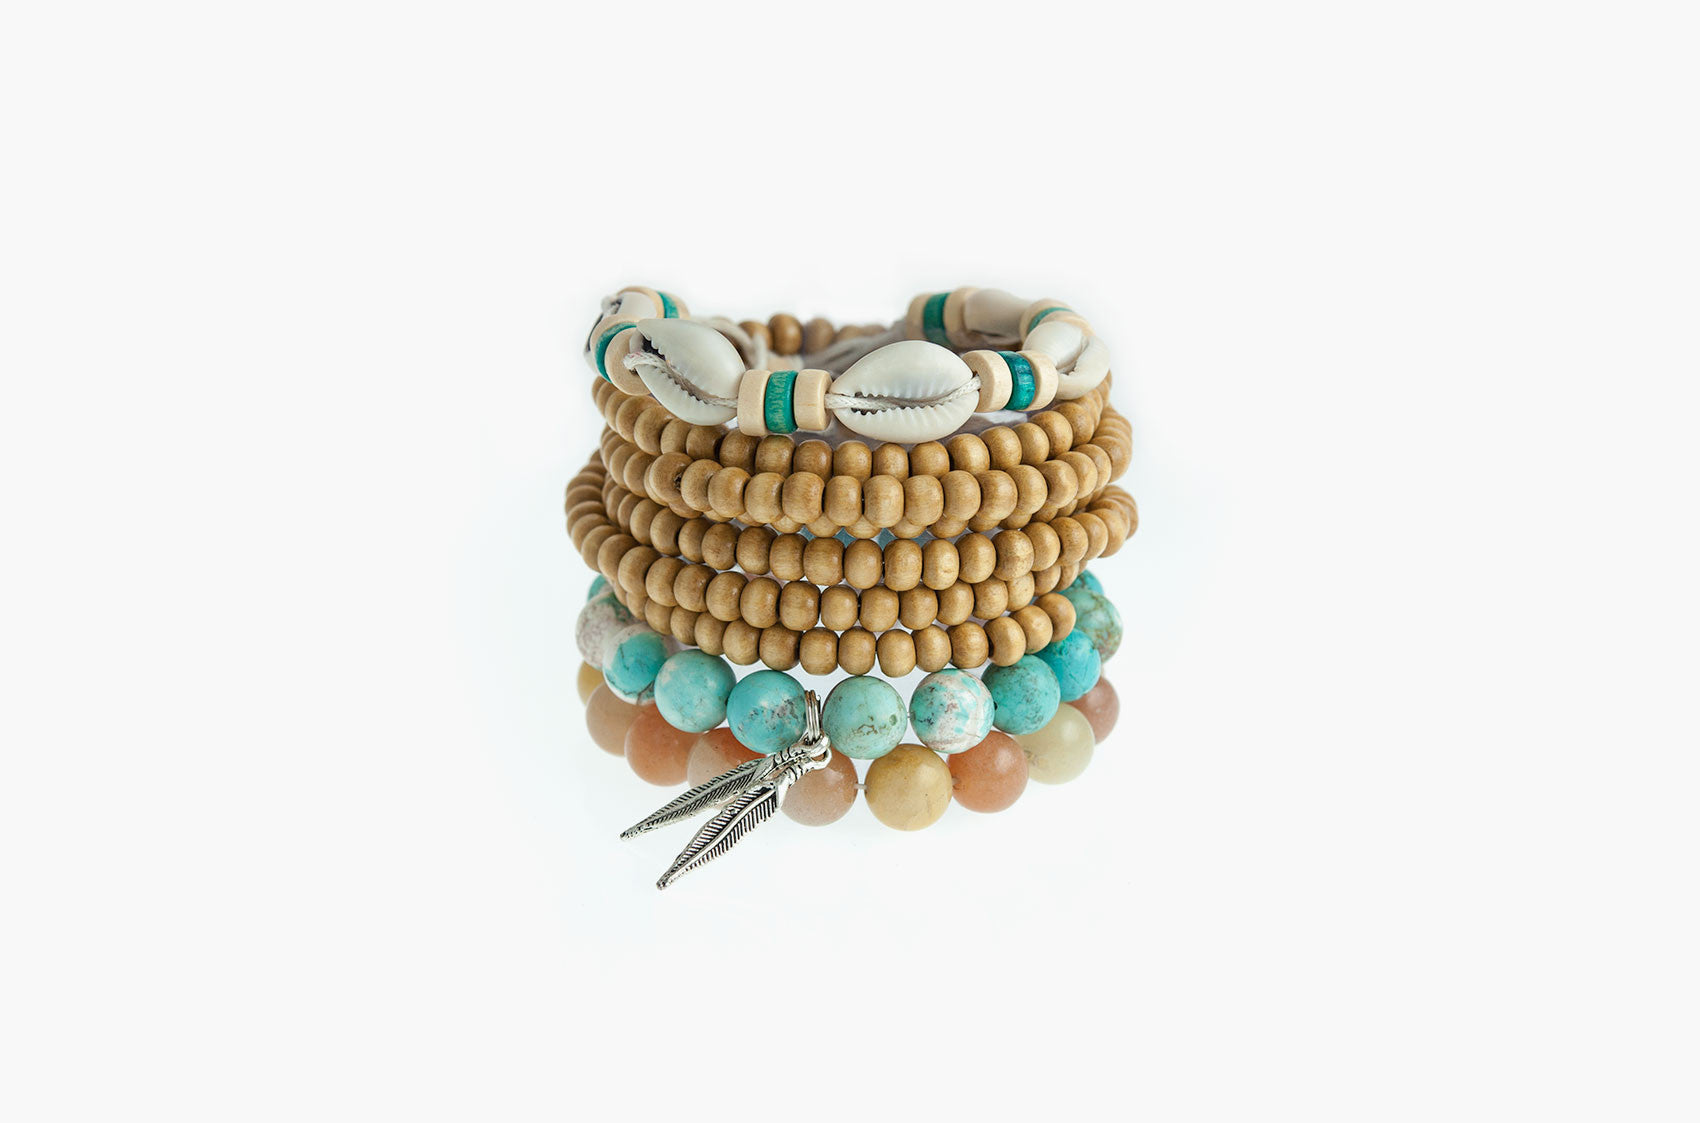 Stacked or Separate Bracelet Collection No. 5